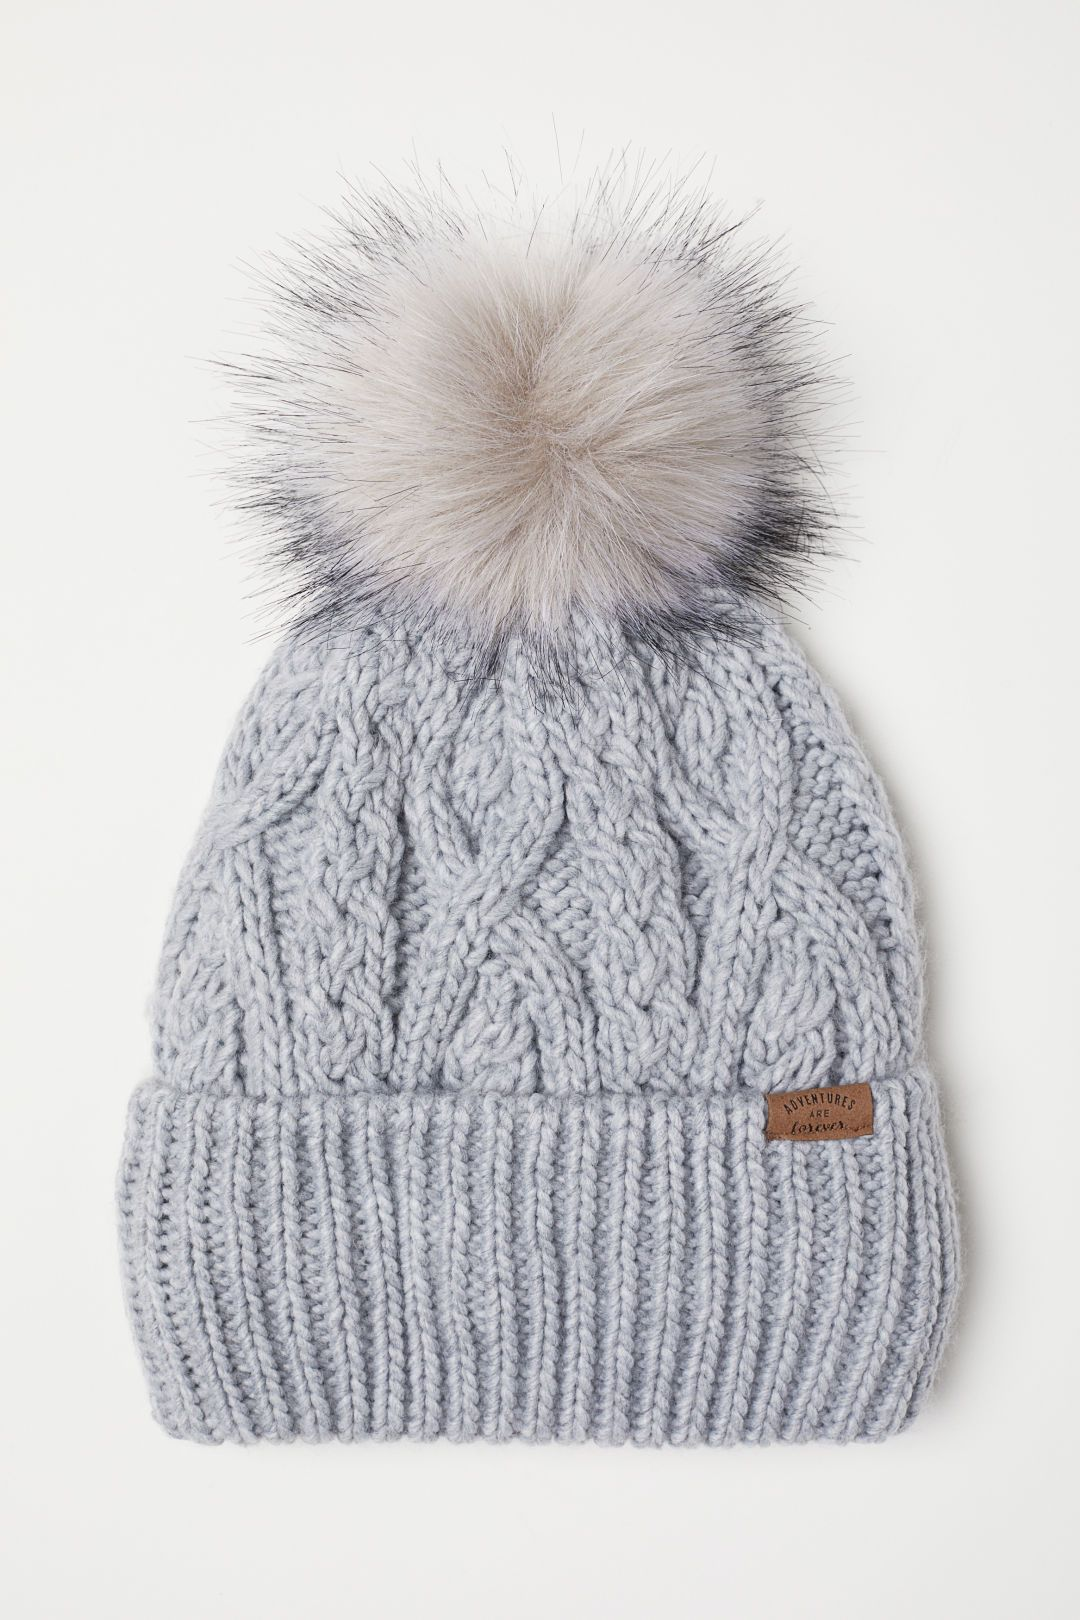 Ladies Chunky Knit Hat with Faux Fur Bobble 3 Colours to Choose